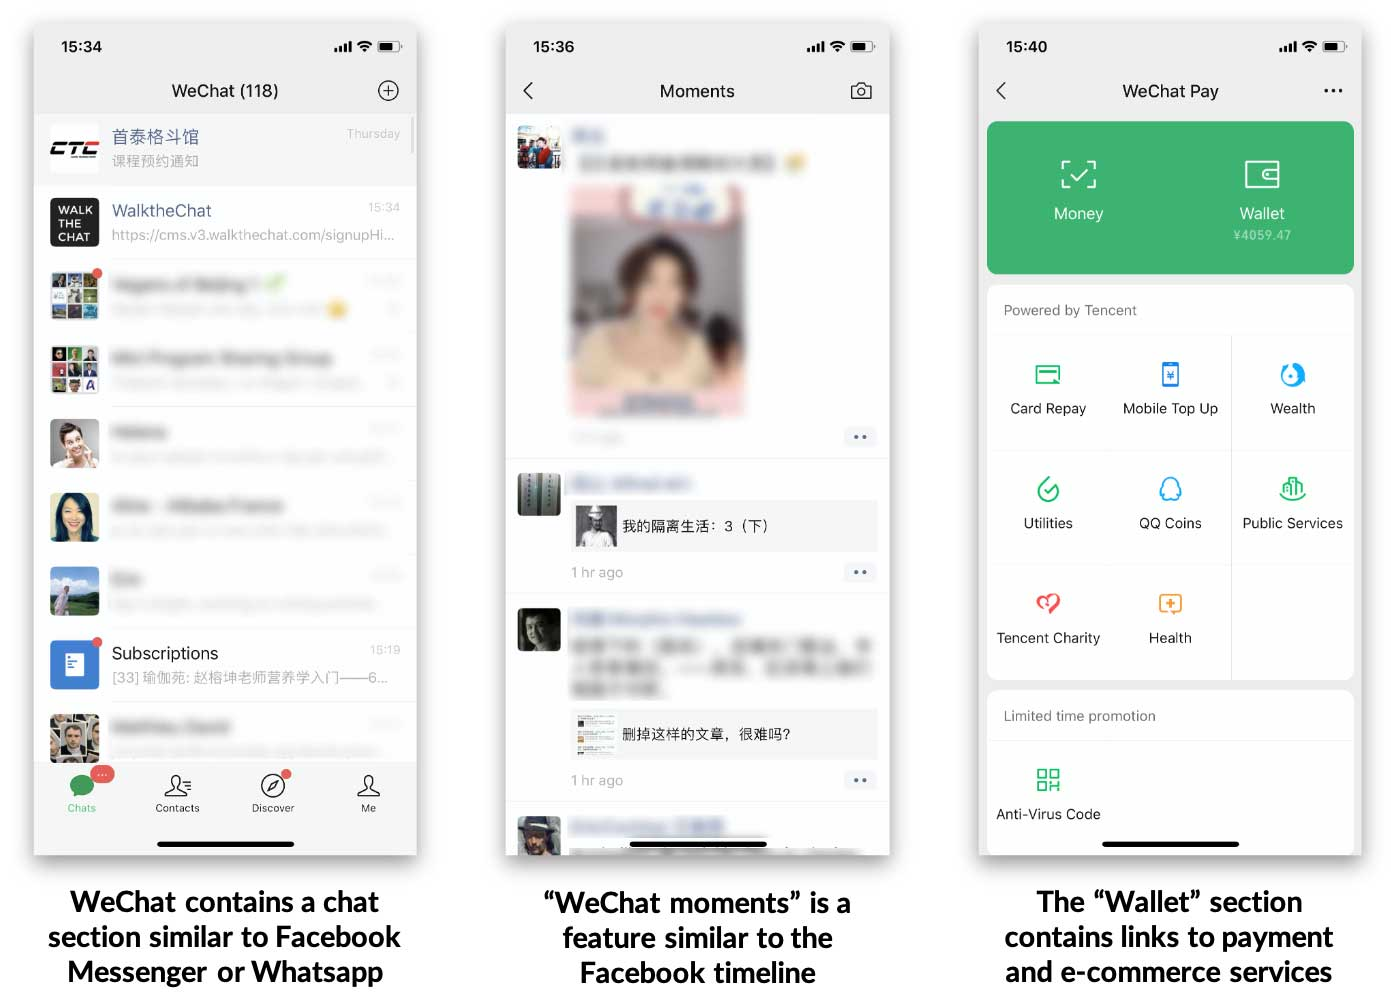 wechat chat, moments, and wallet